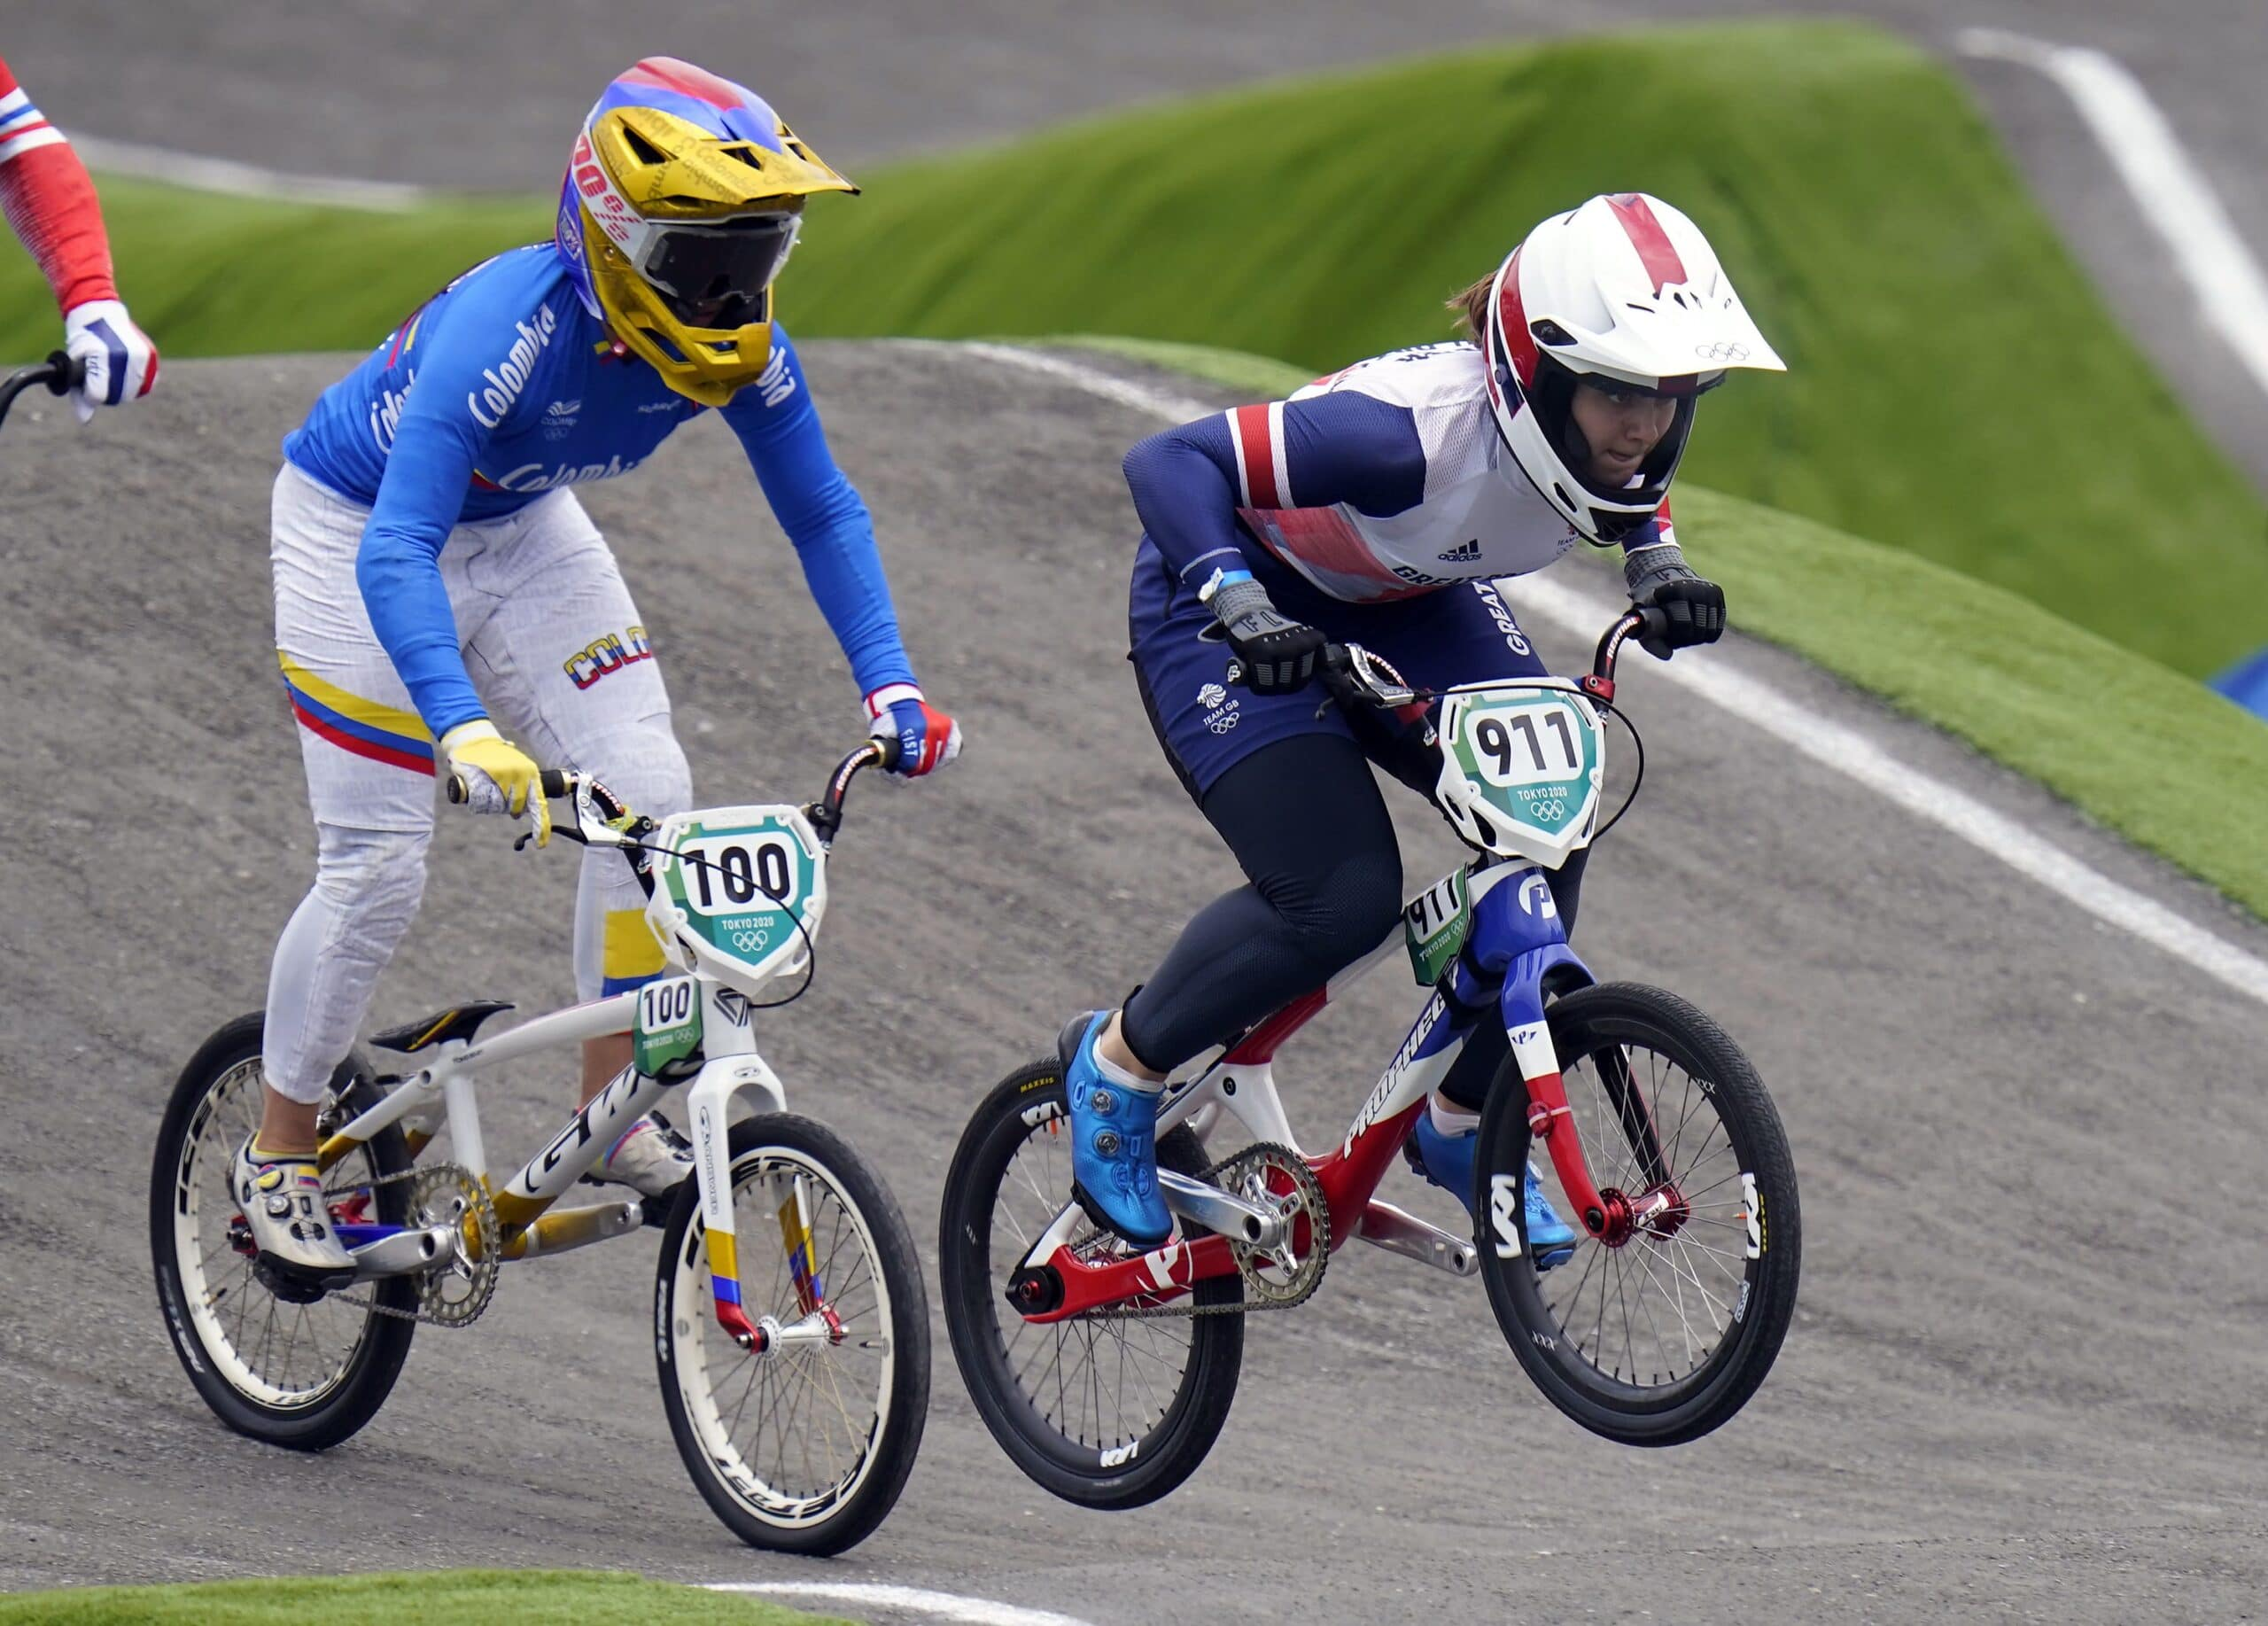 How You can Get Into Bmx Riding